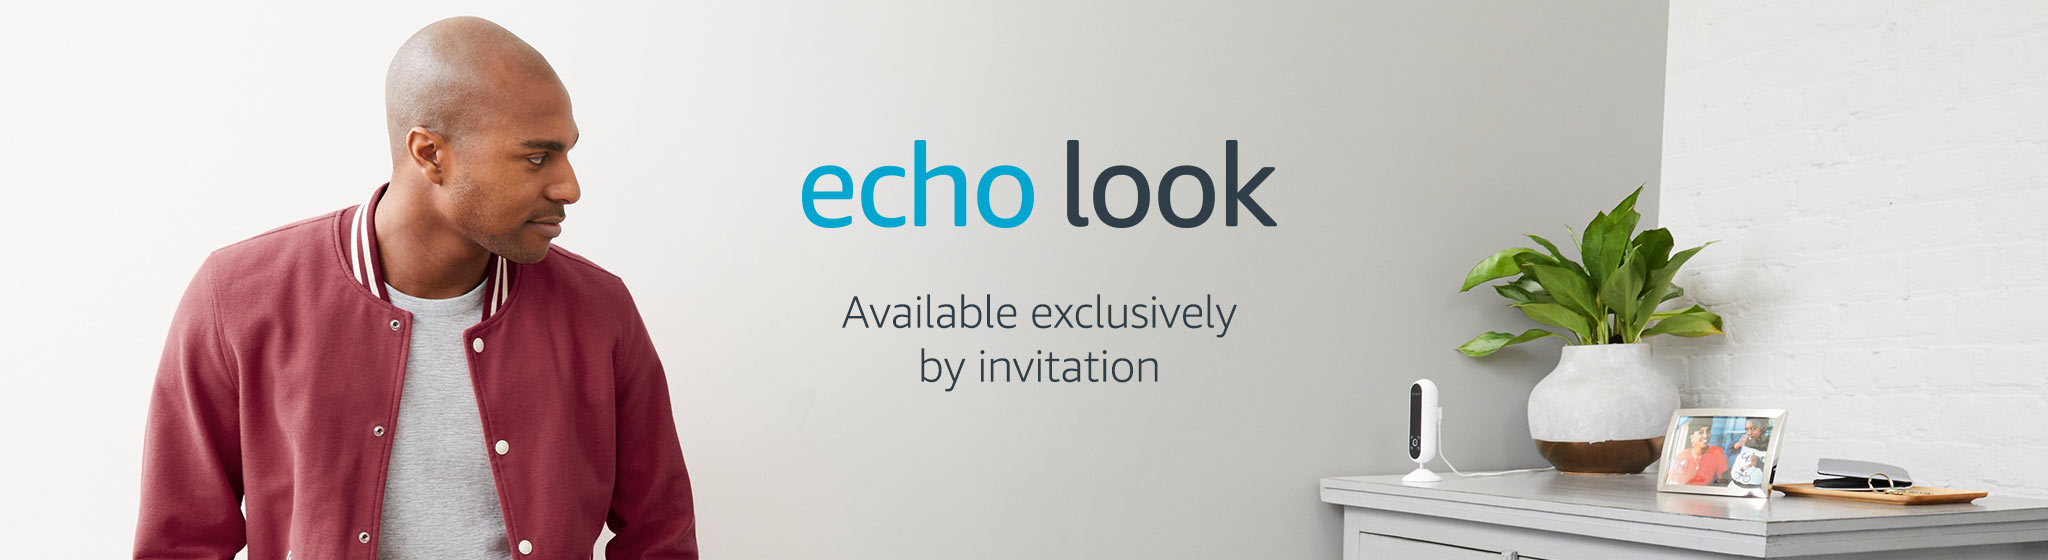 Echo Look: Available exclusively by invitation